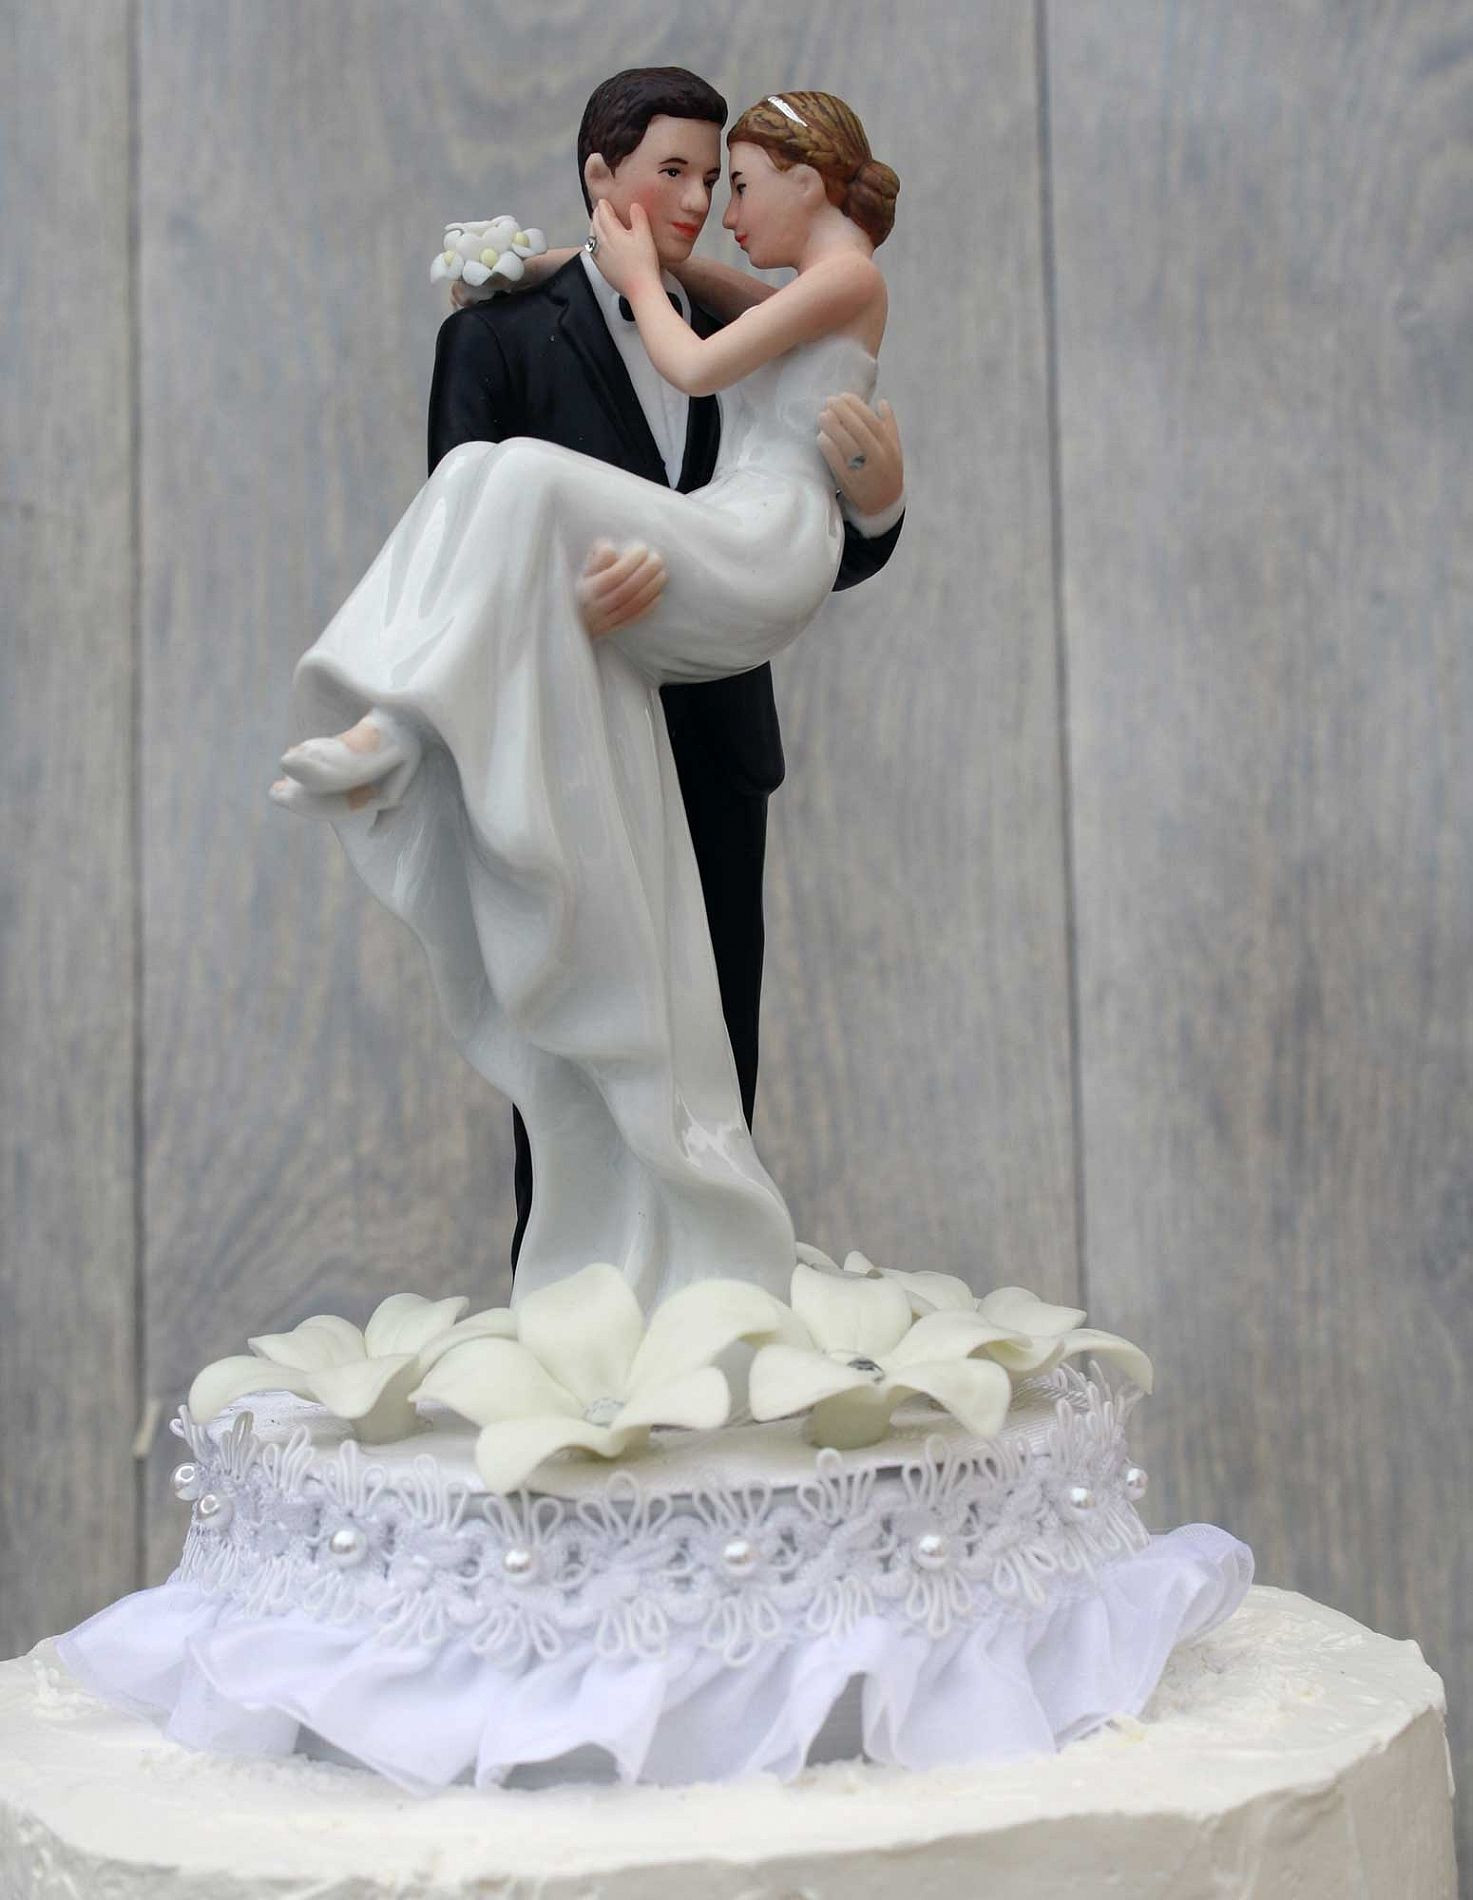 Wedding Cakes With Toppers  Traditional wedding cake toppers bride and groom idea in